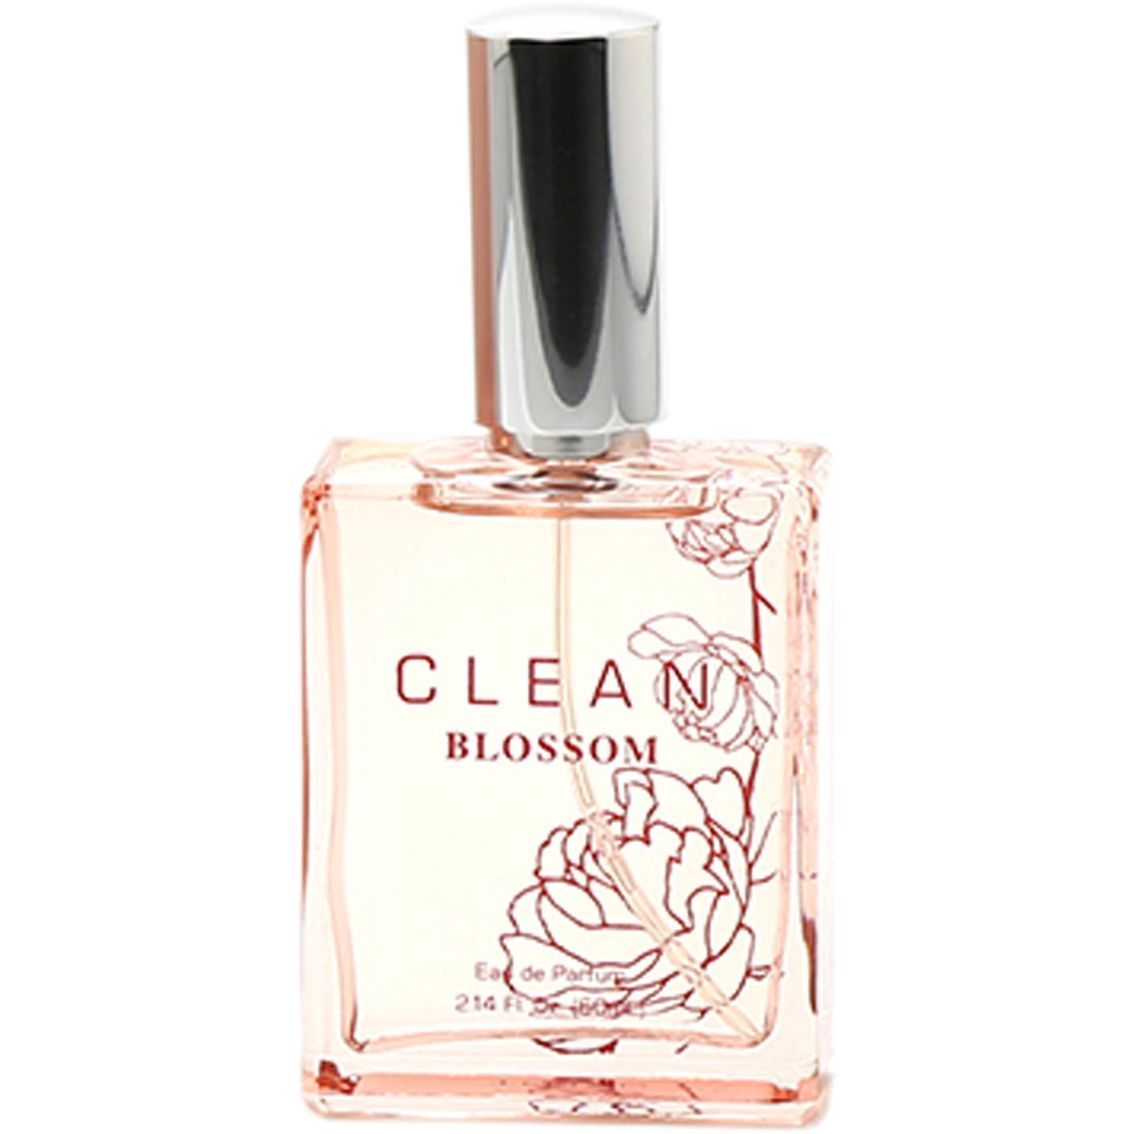 CLEAN BLOSSOM PERFUME SPRAY